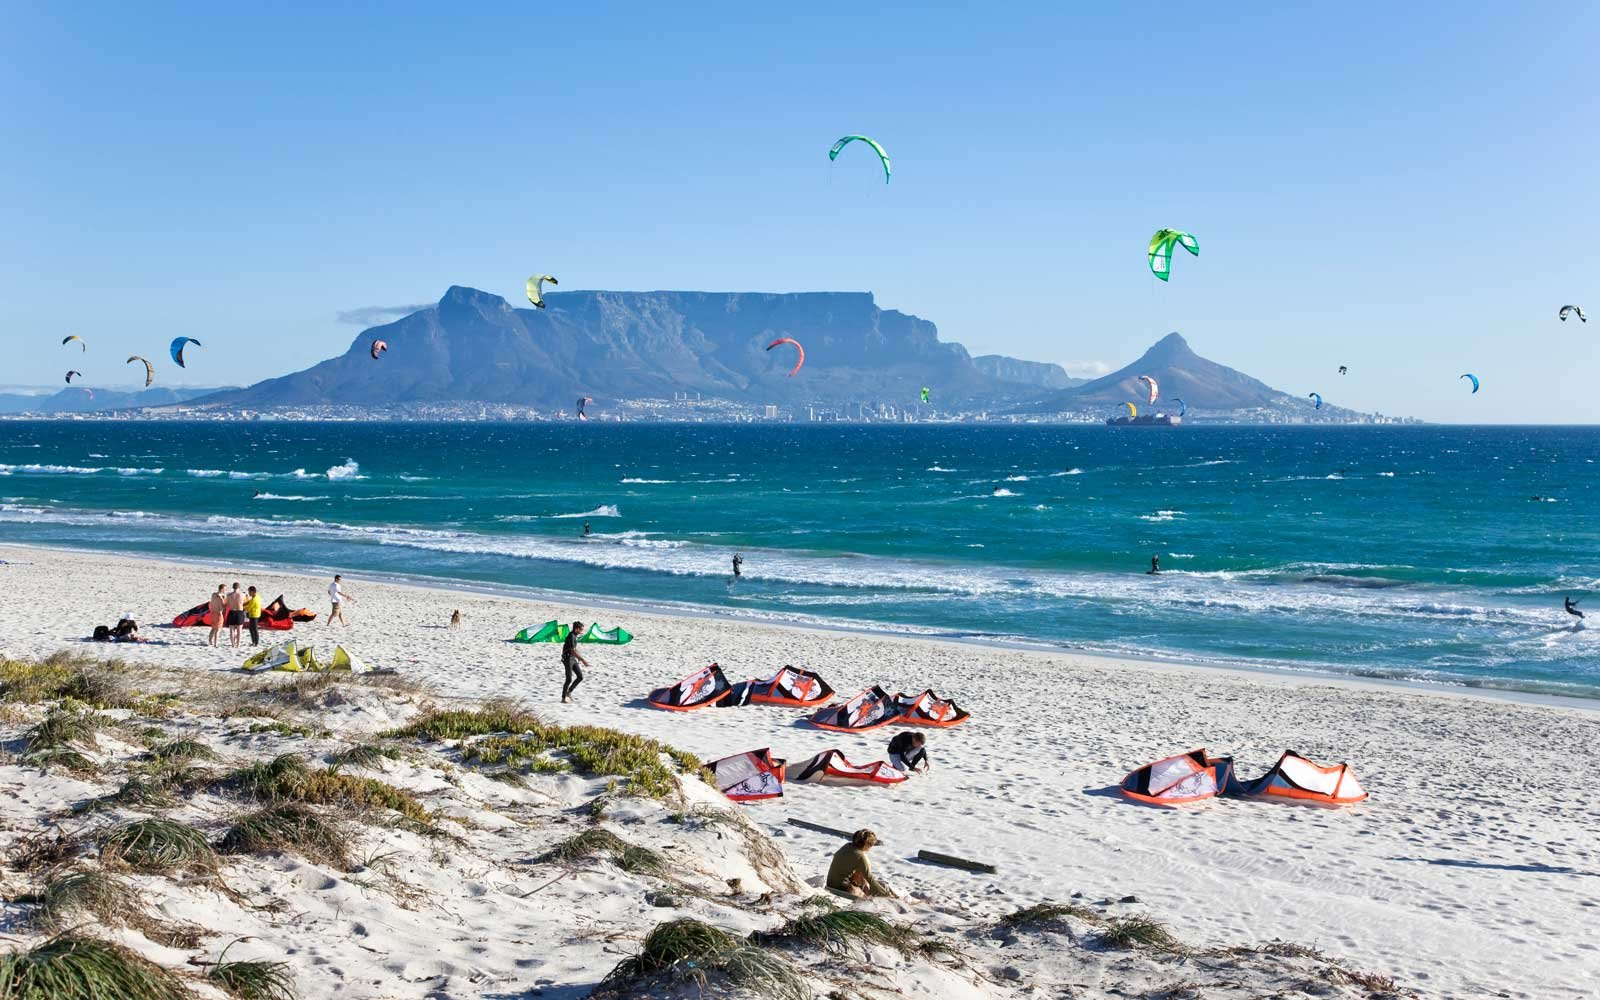 Kite surfing below Table Mountain, on Blubergstrand Beach.